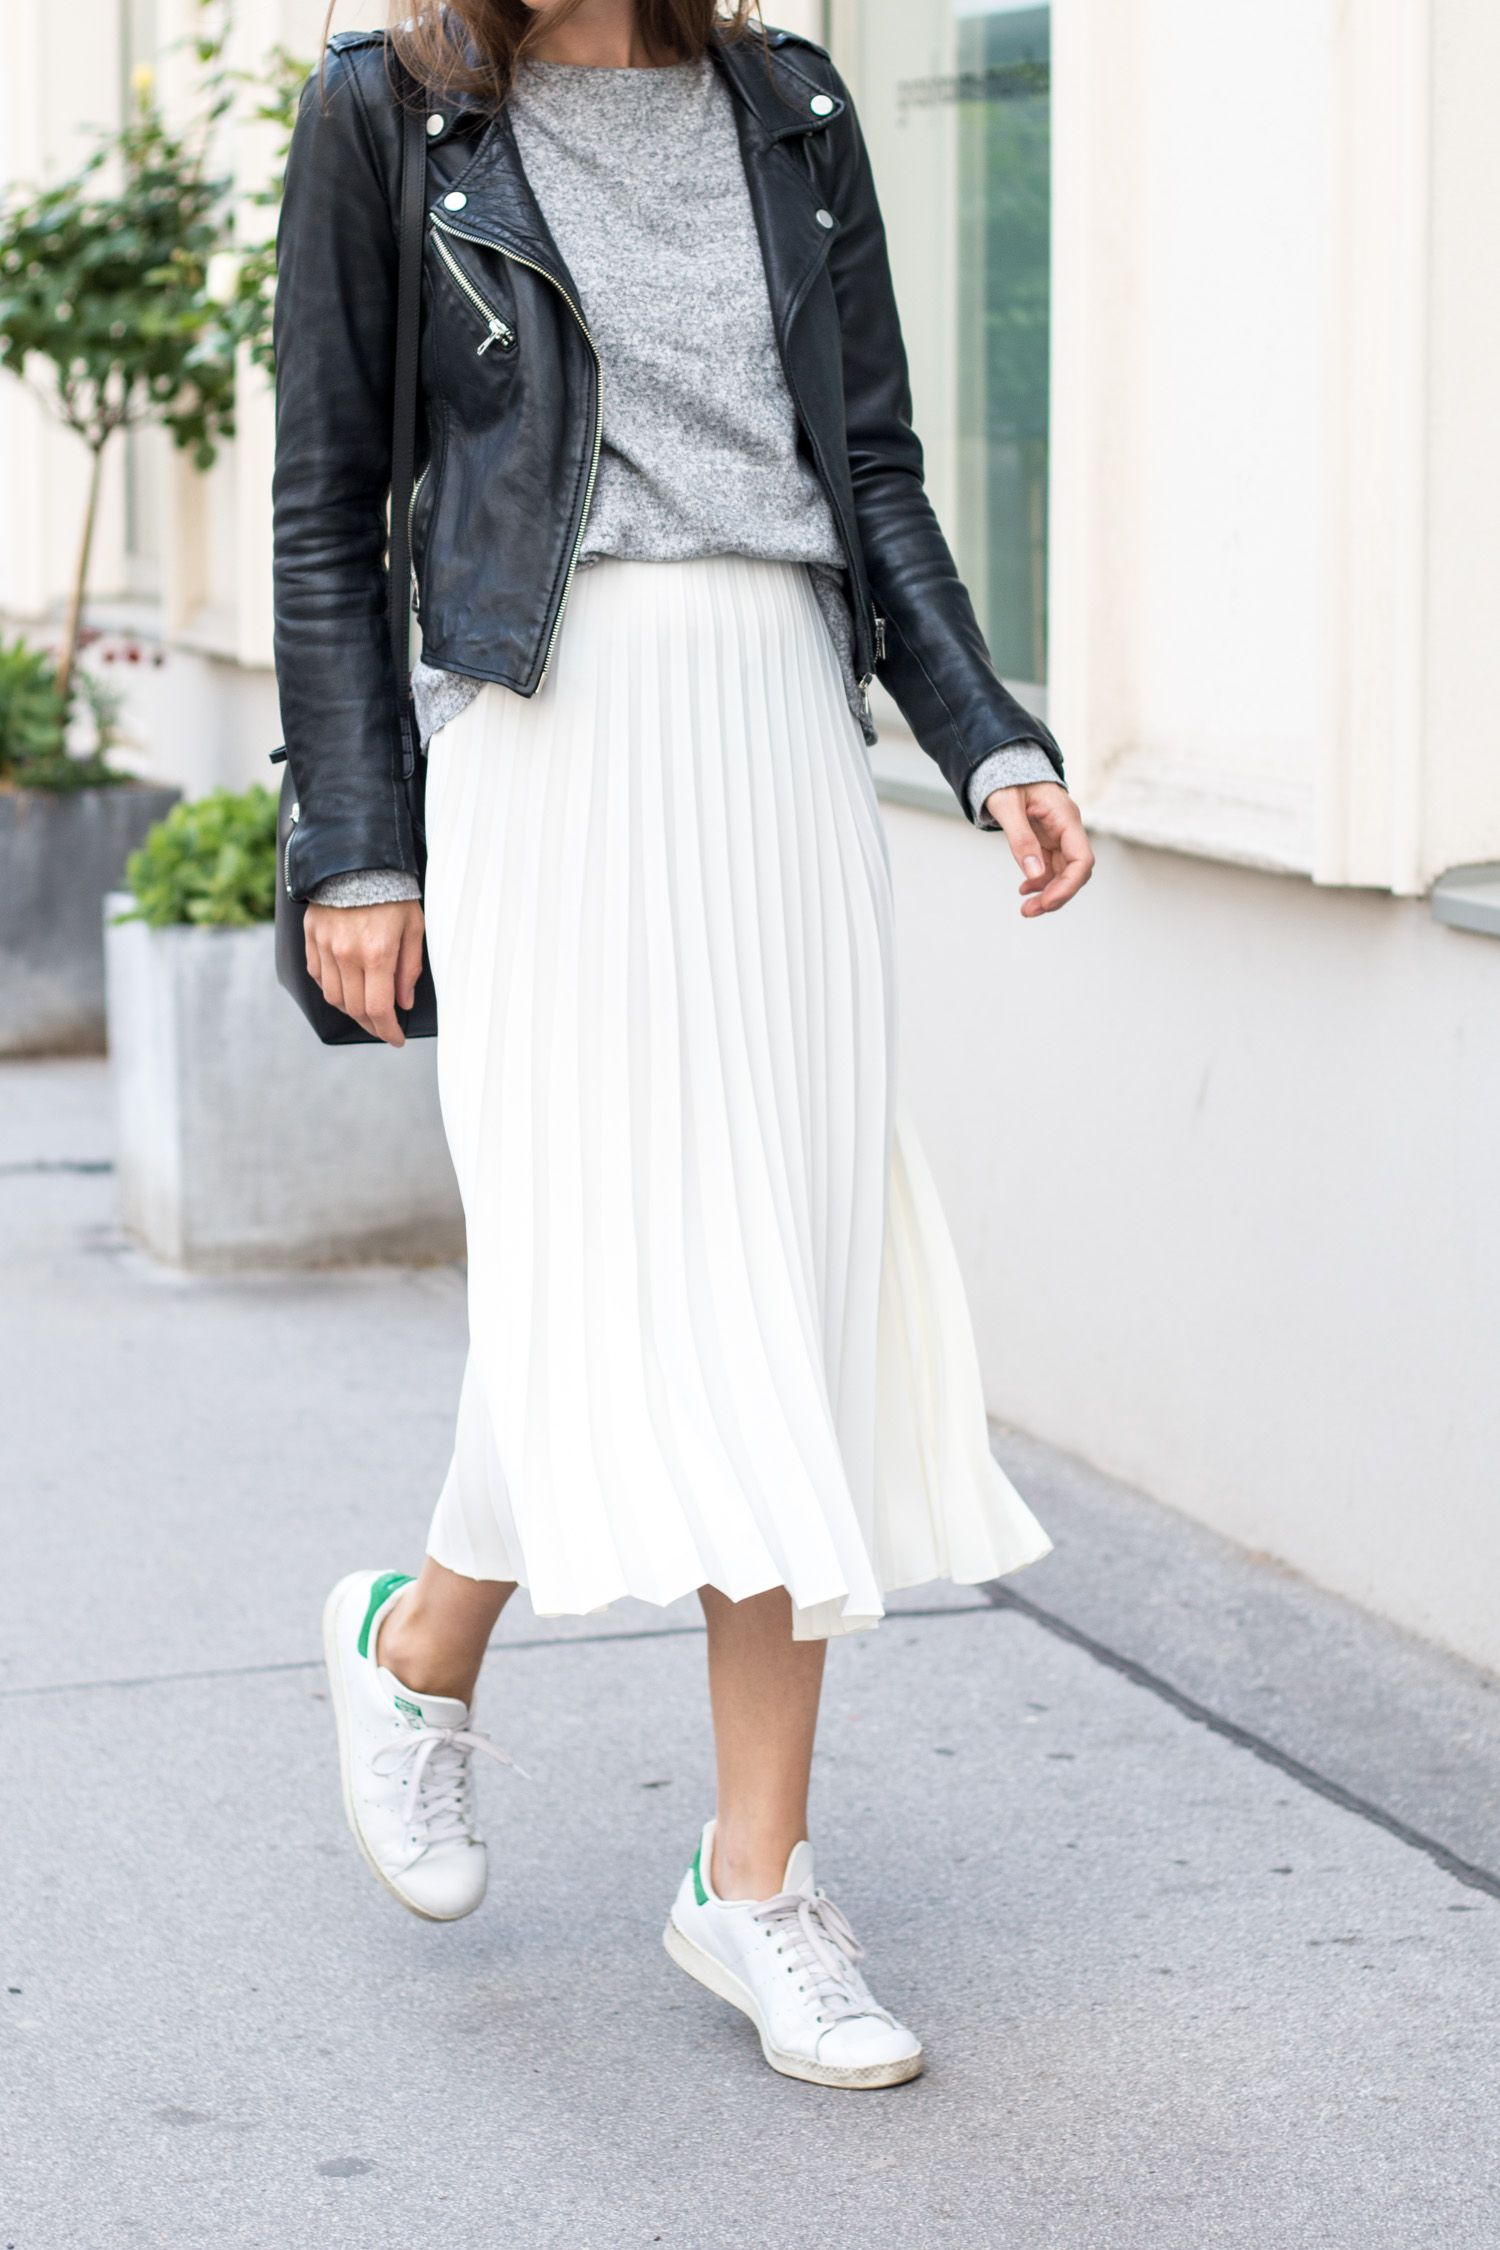 How To Wear The Ballerina Trend Pinterest White Sneakers White Skirts And Leather Jackets